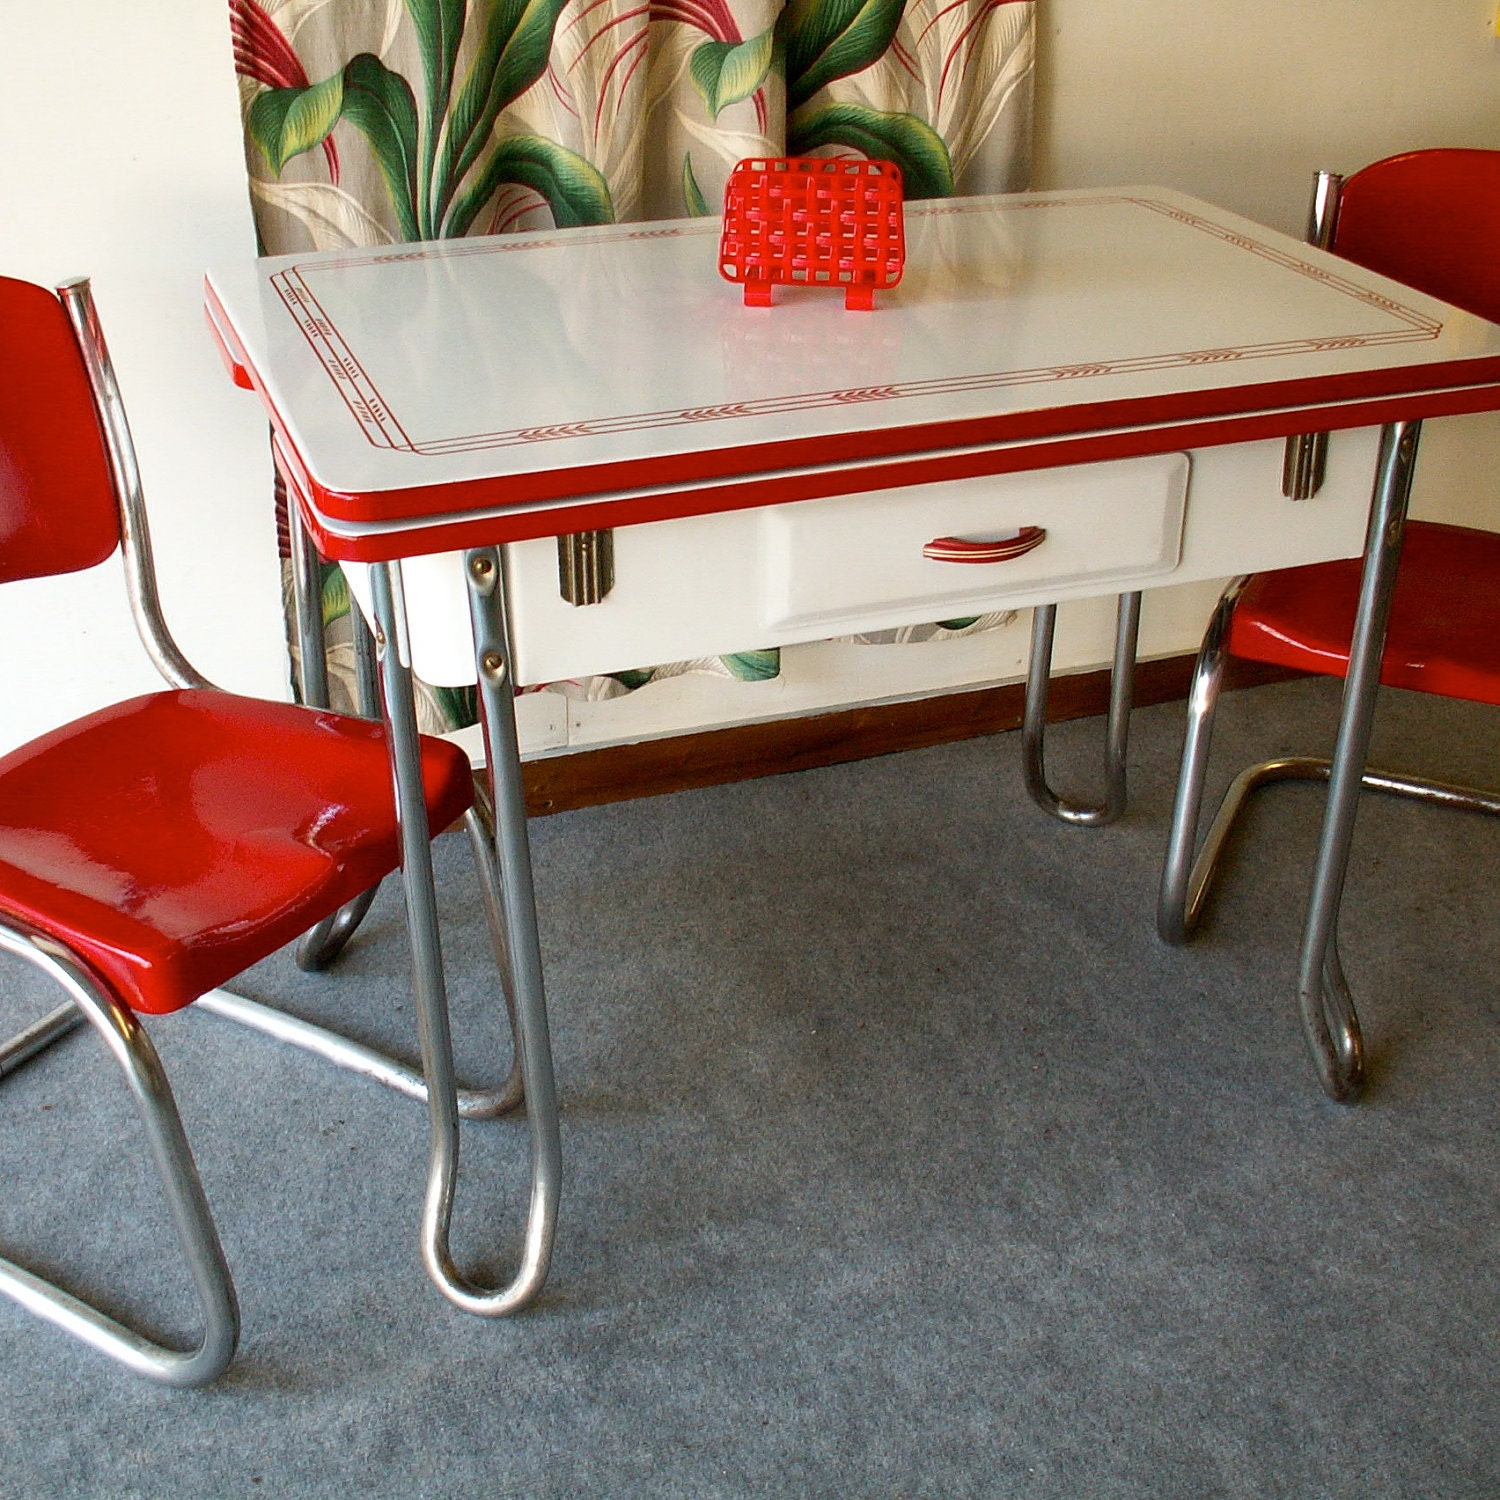 Black And White Retro Dining Table And Chairs Set: Vintage Red And White Porcelain Table